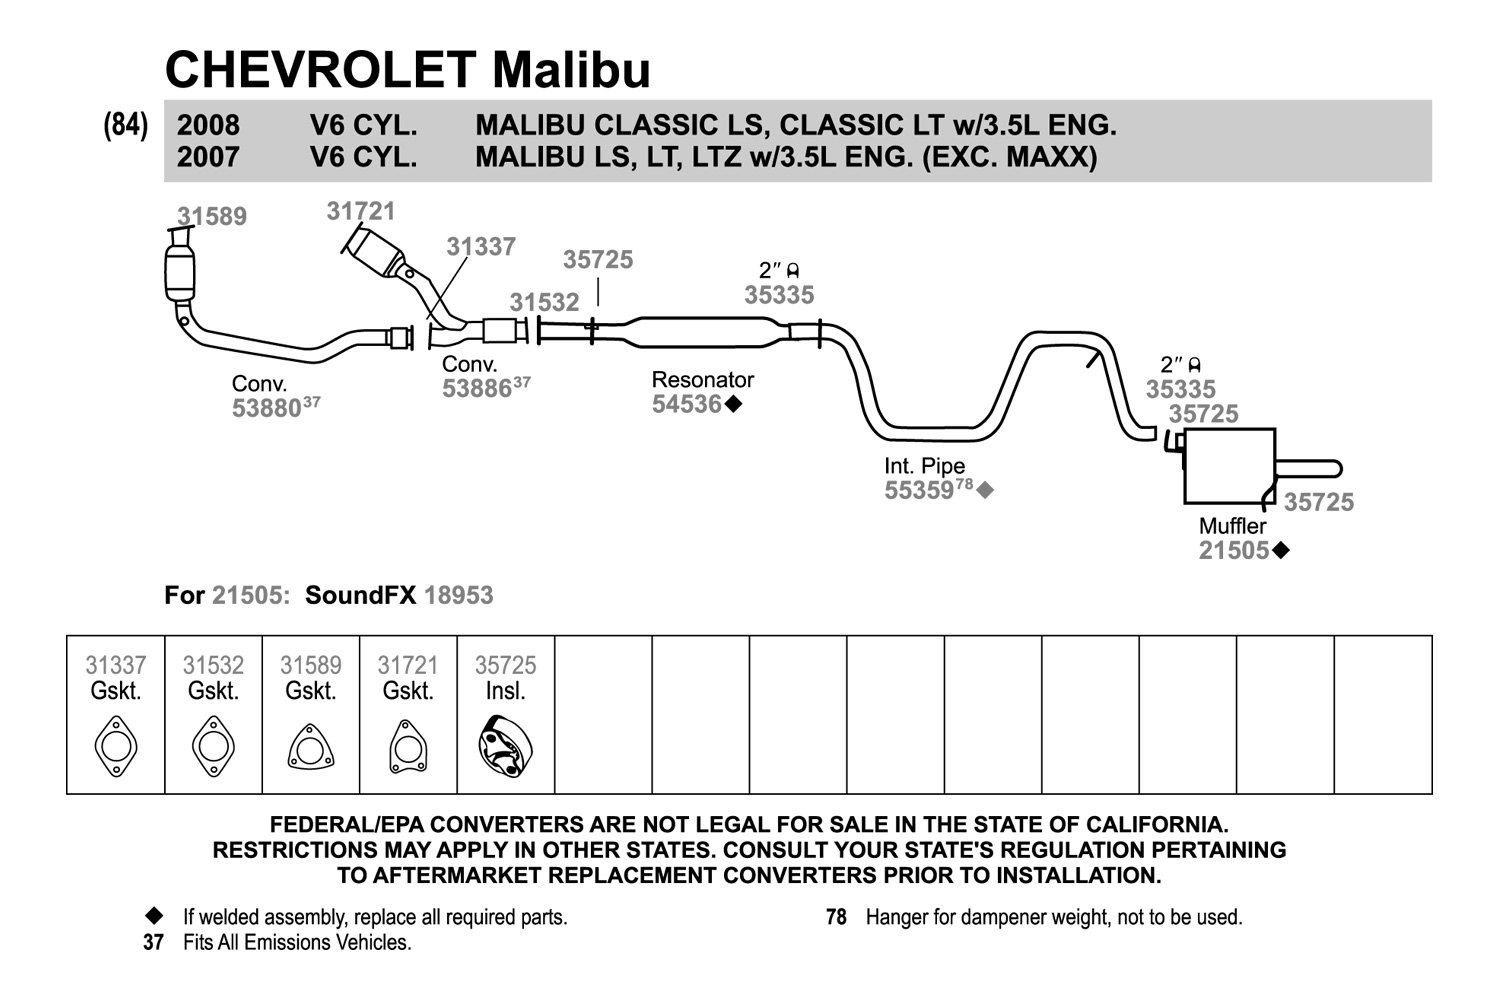 2004 chevy malibu fuse box location